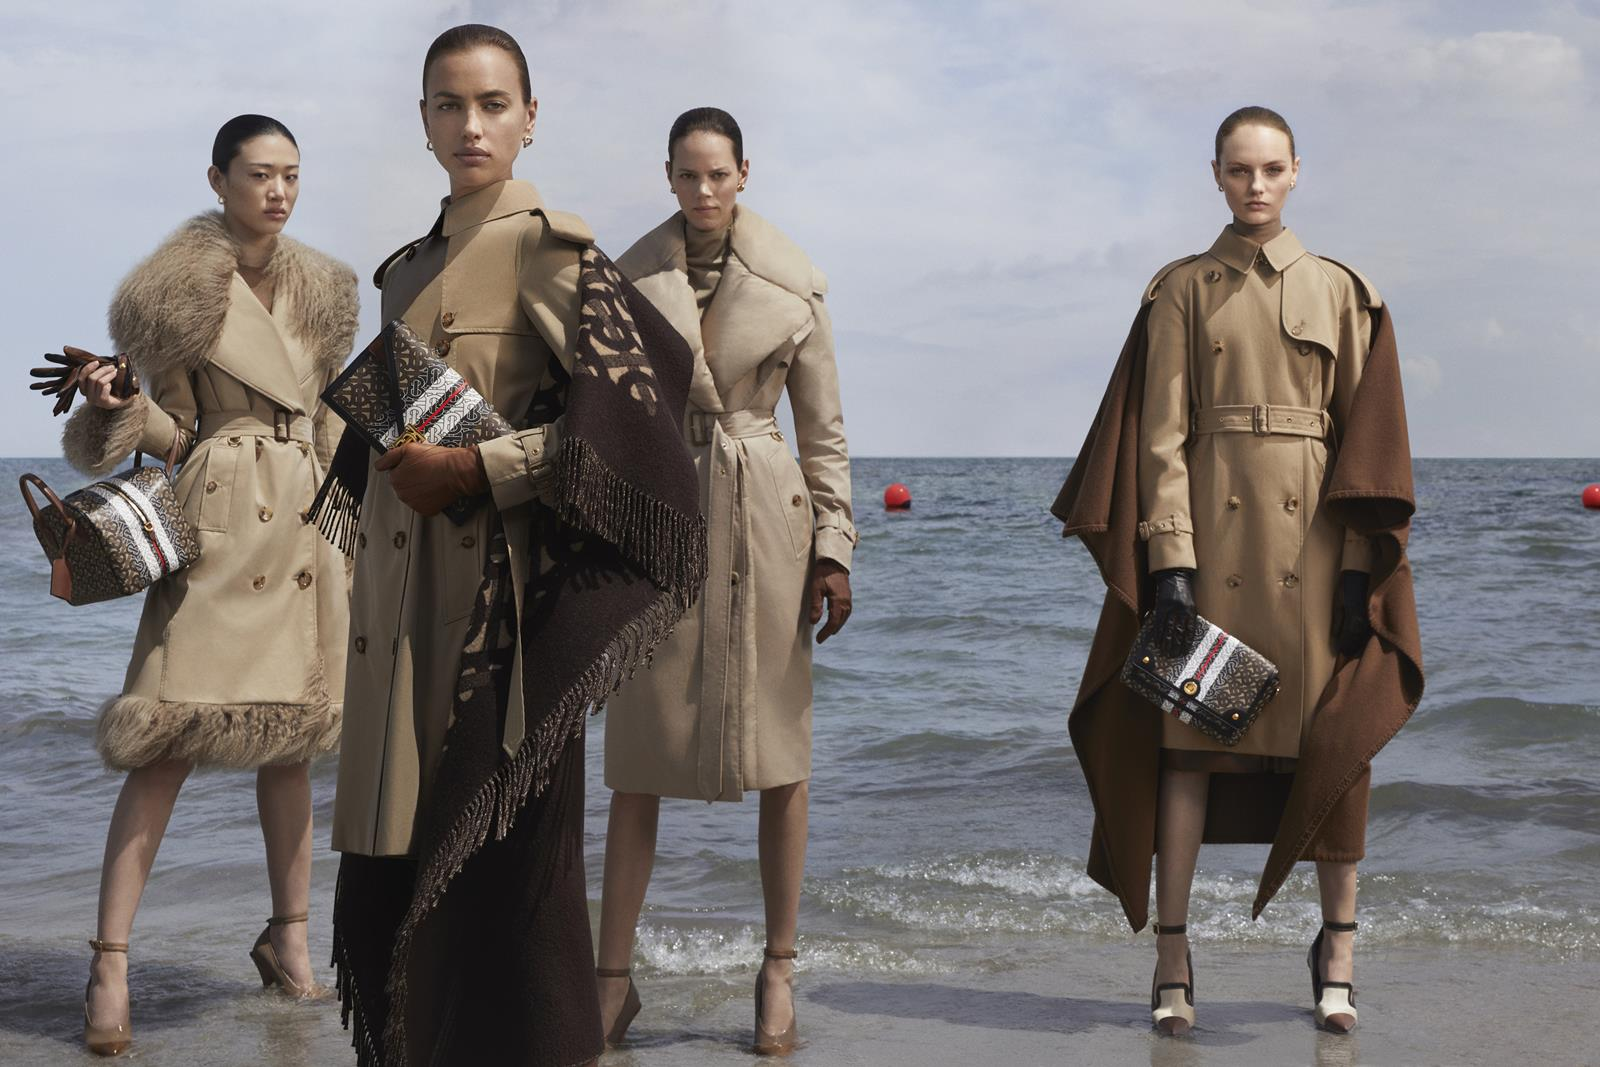 Sora Choi, Irina Shayk, Freja Beha Erichsen and Fran Summers photographed by Danko Steiner for the Burberry Autumn_Winter 2019 campaign c Courtesy of Burberry _ Danko Steiner